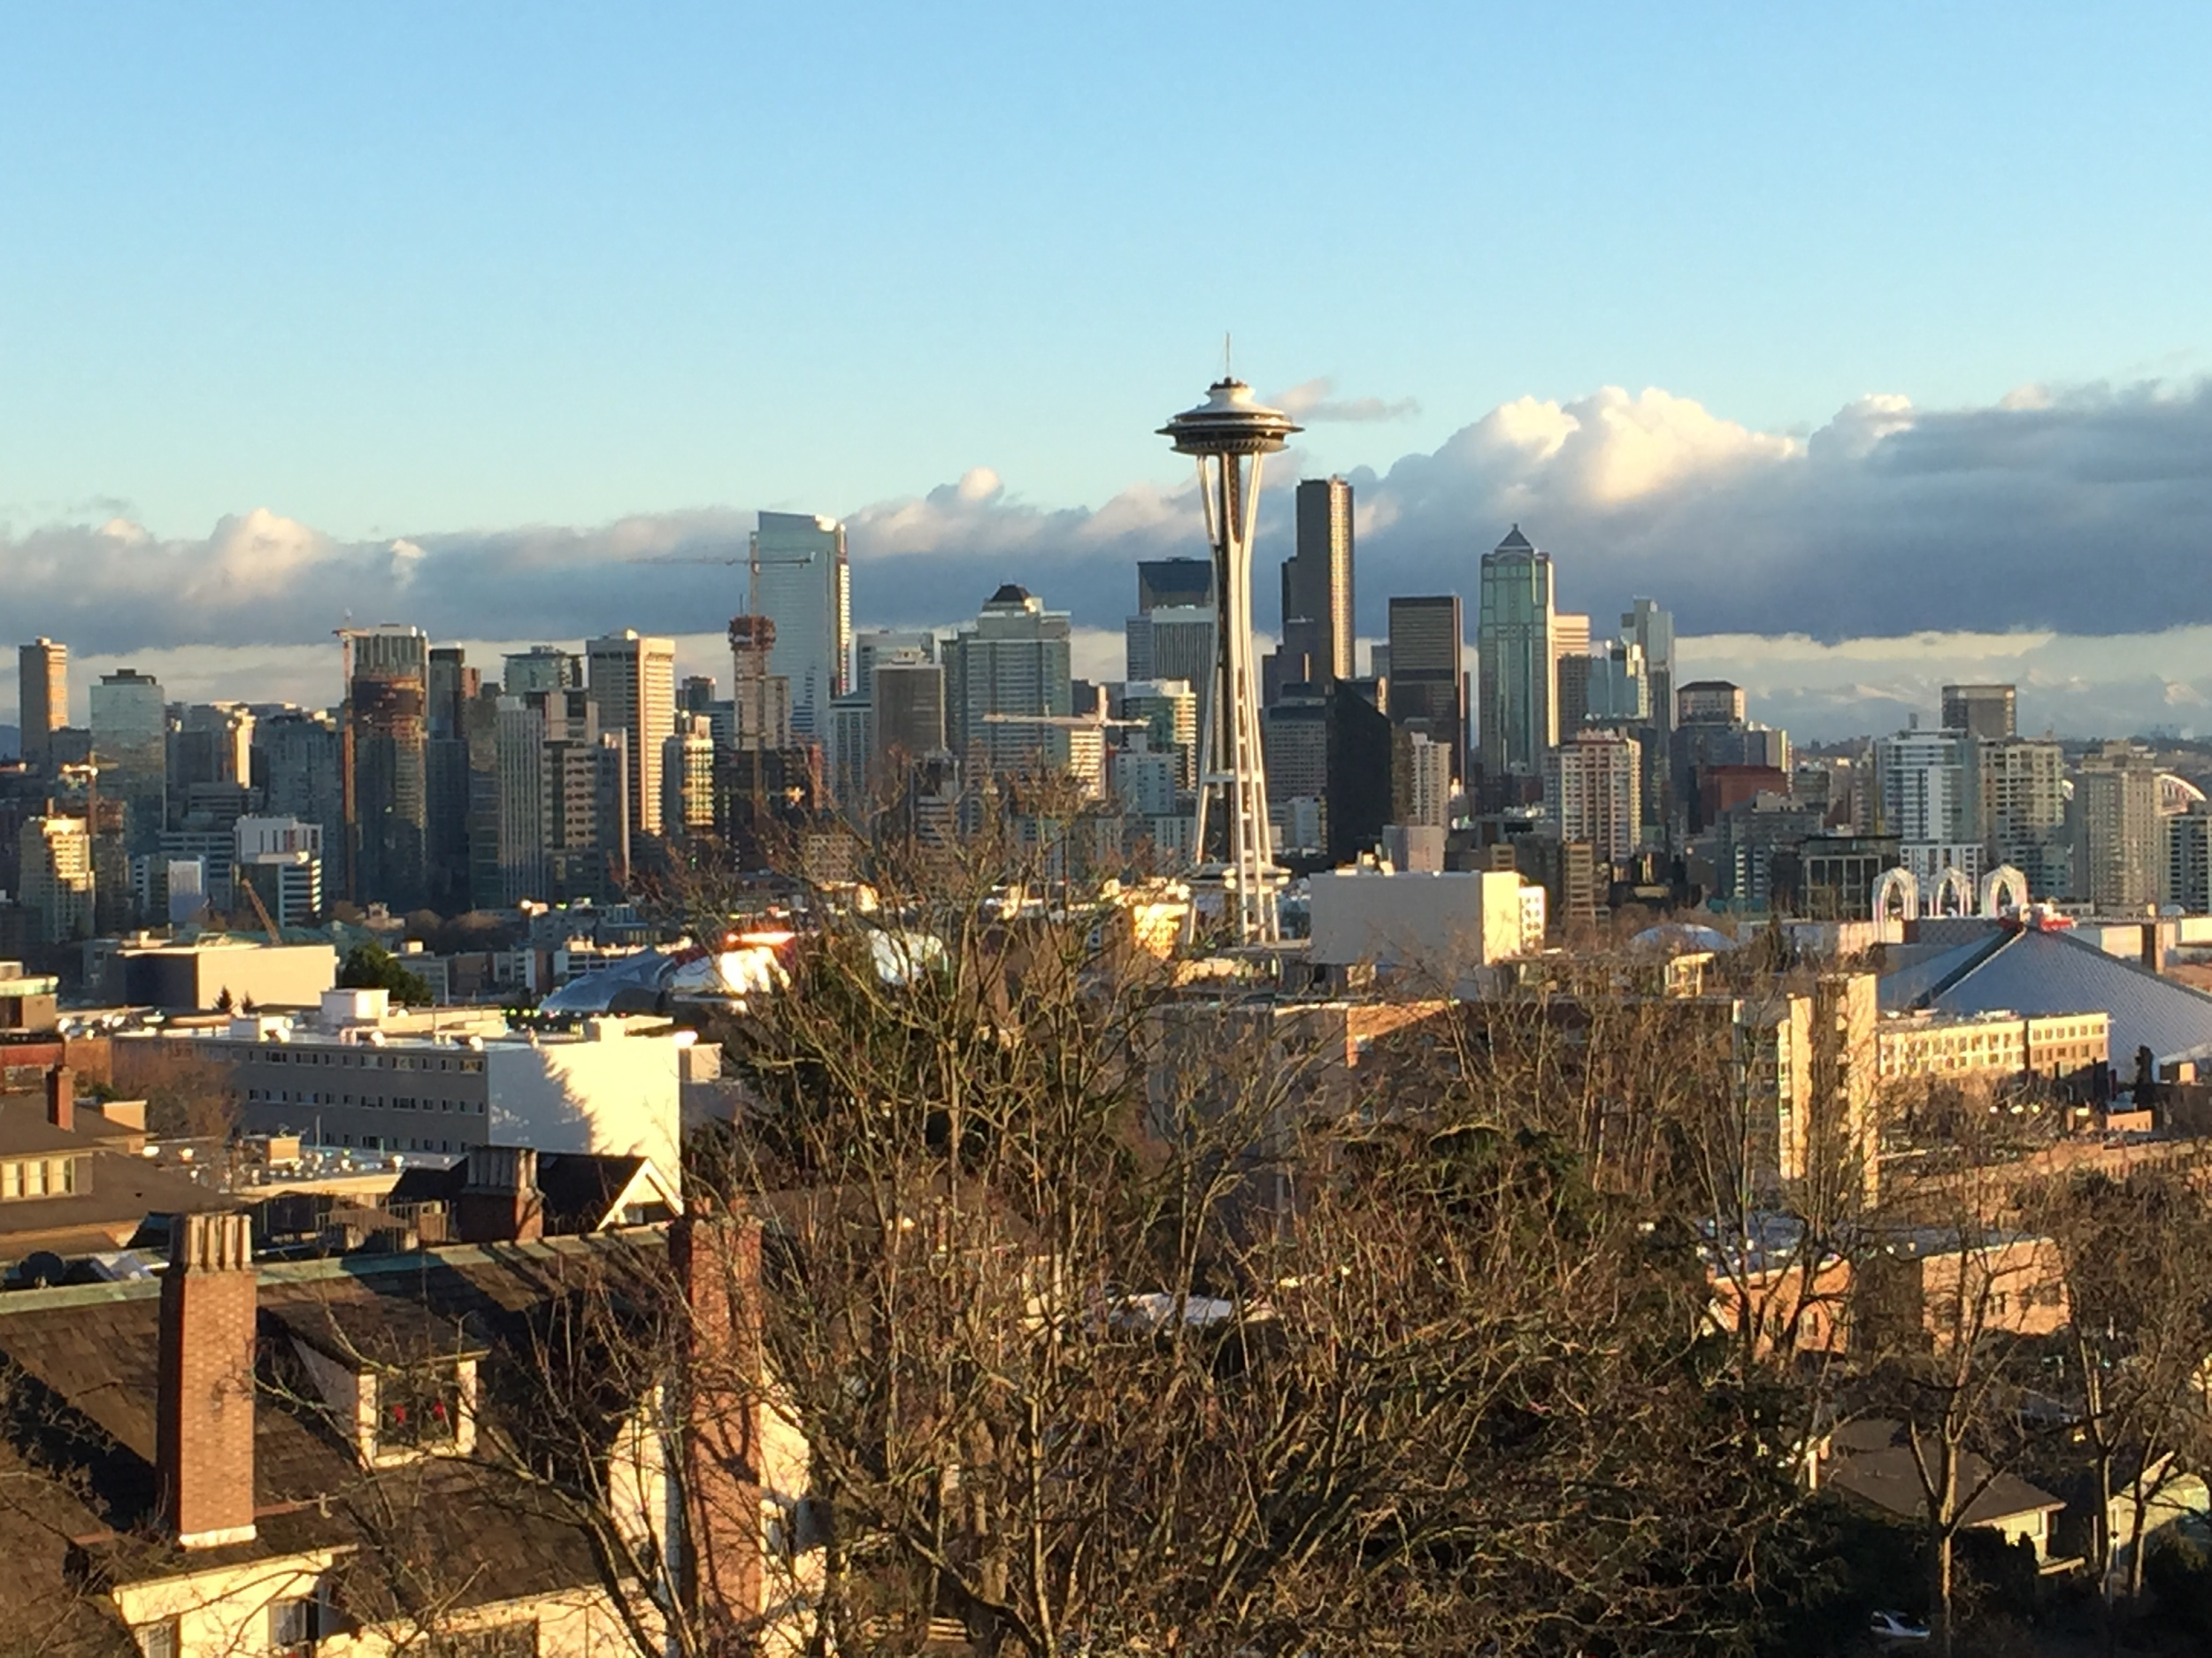 The view from Kerry Park